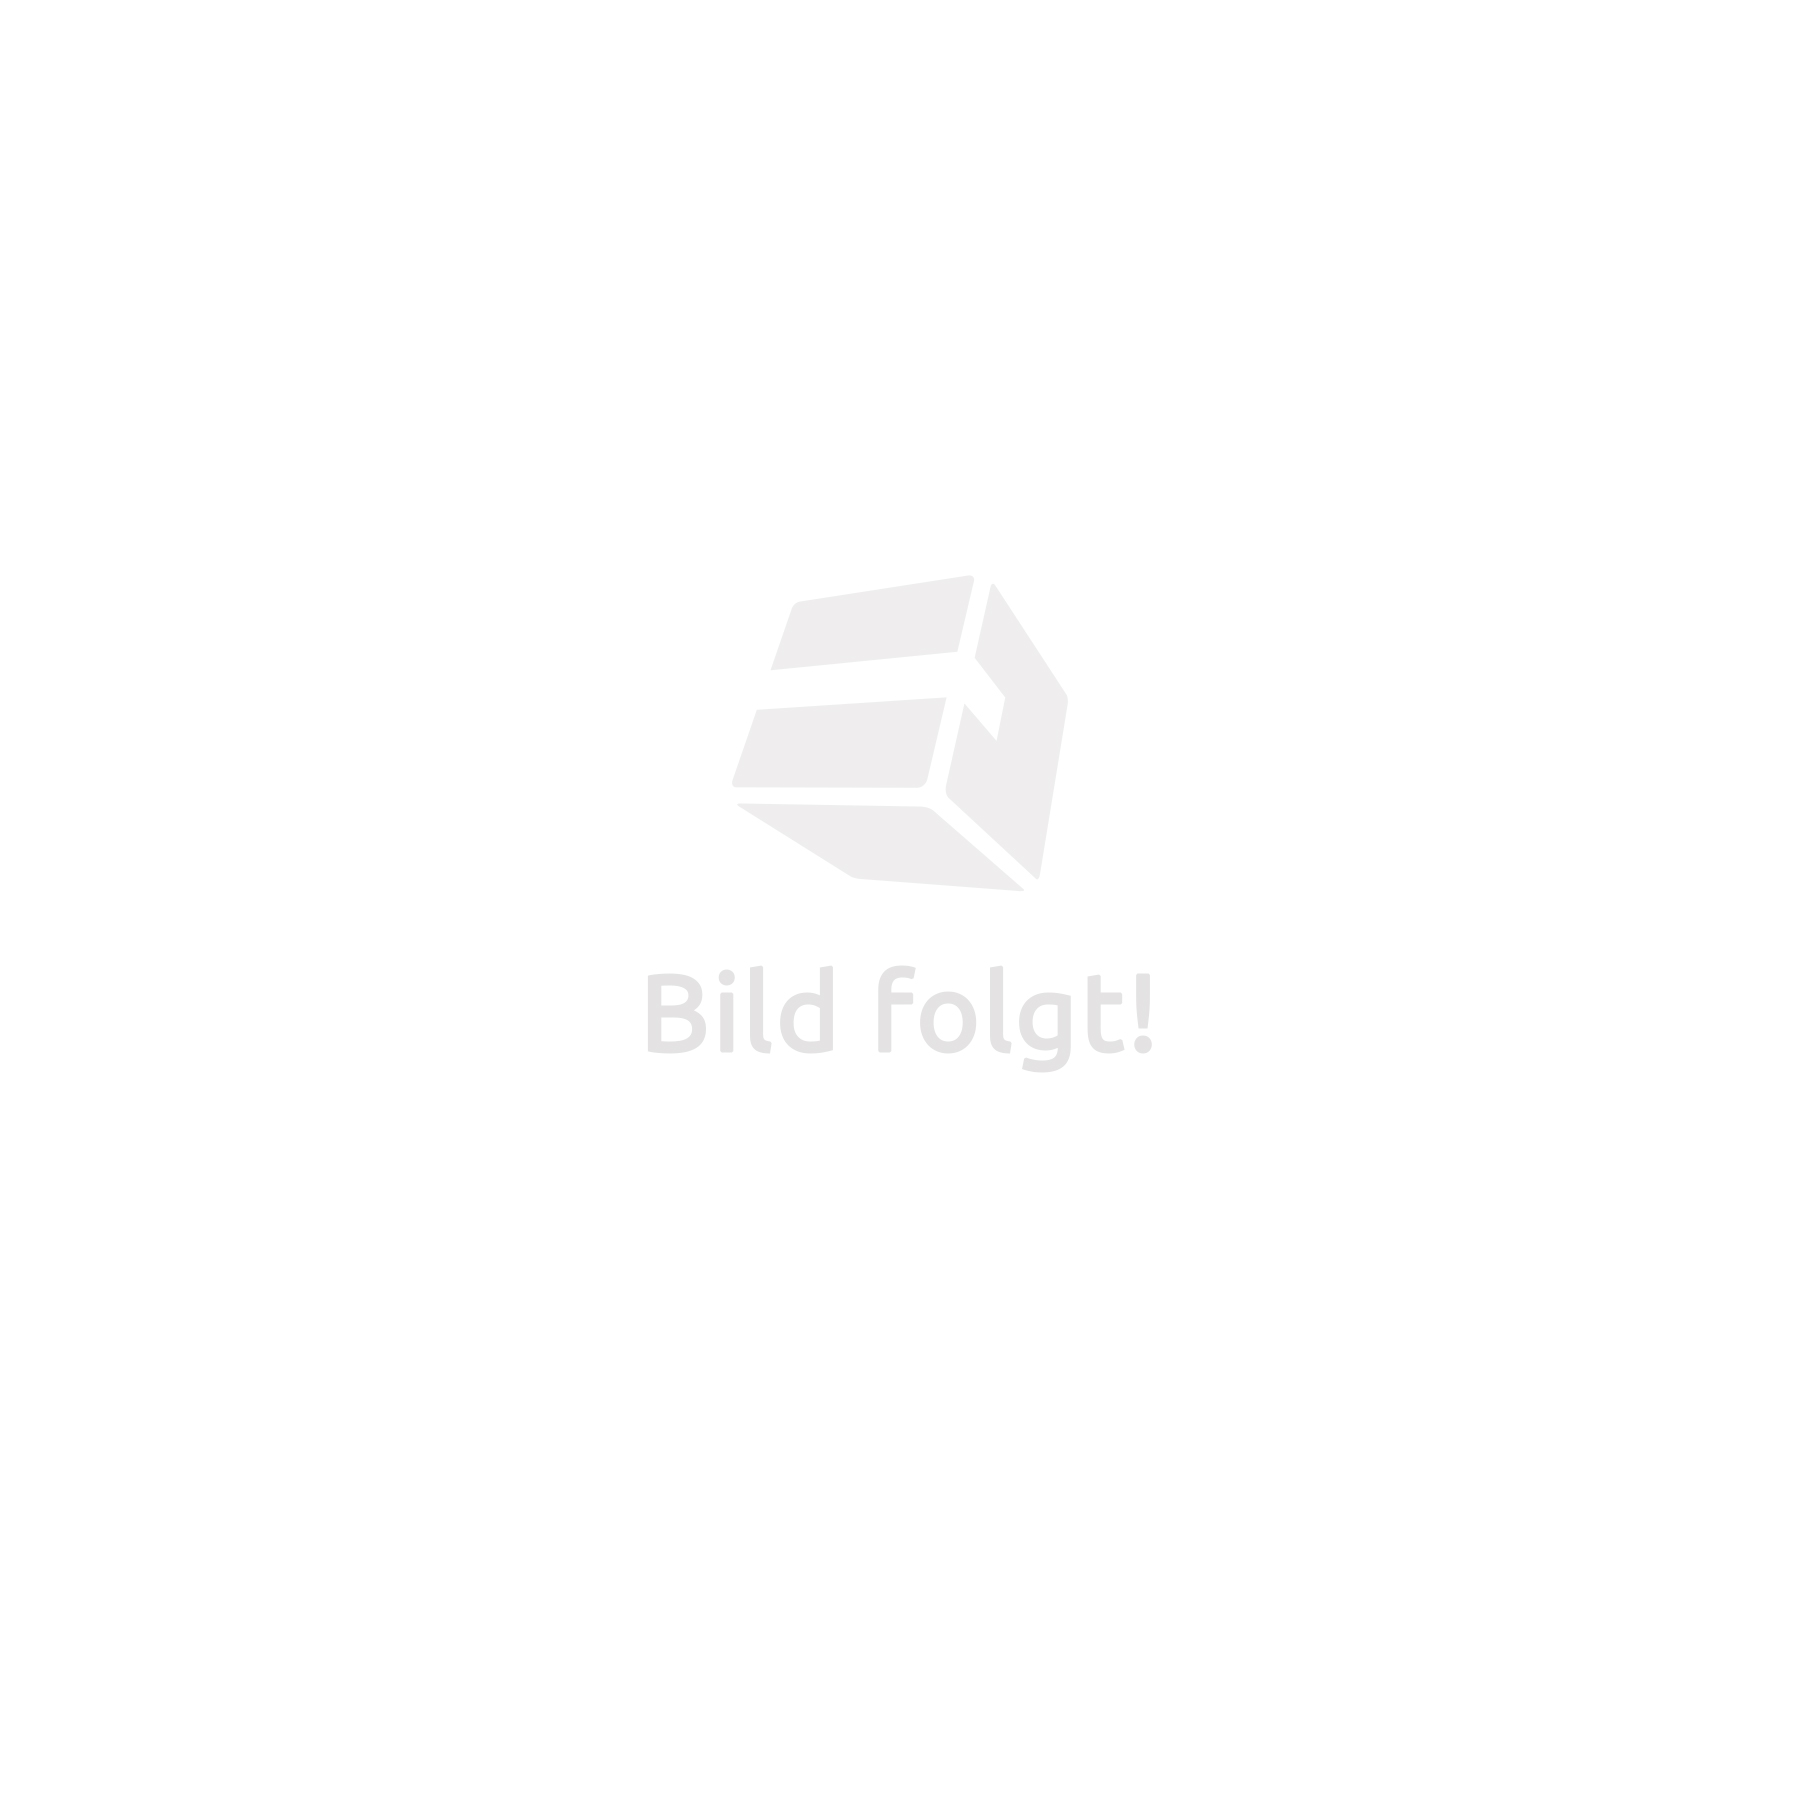 140x200 cm schlafzimmerbett metallbett bettgestell bett schwarz neu lattenrost ebay. Black Bedroom Furniture Sets. Home Design Ideas